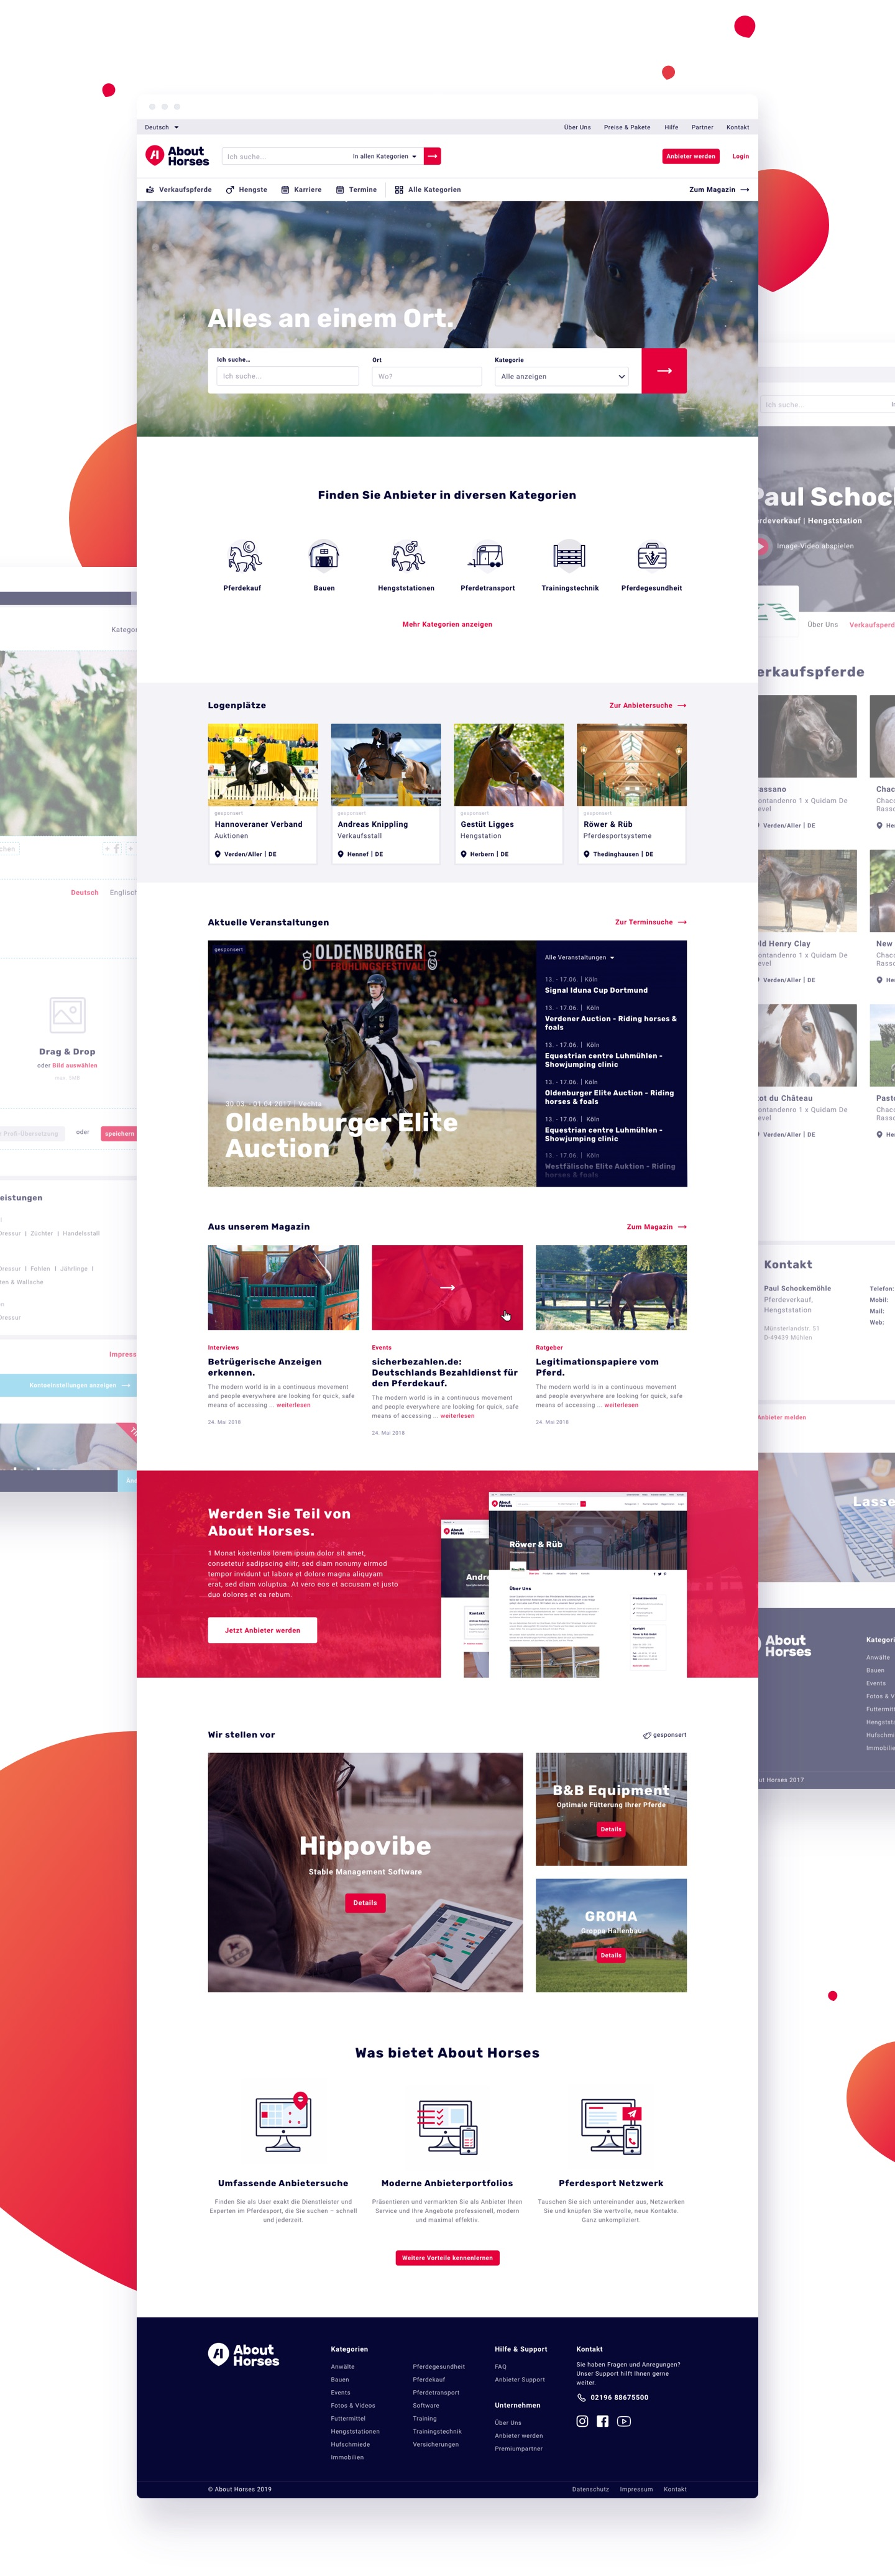 About Horses Website Design